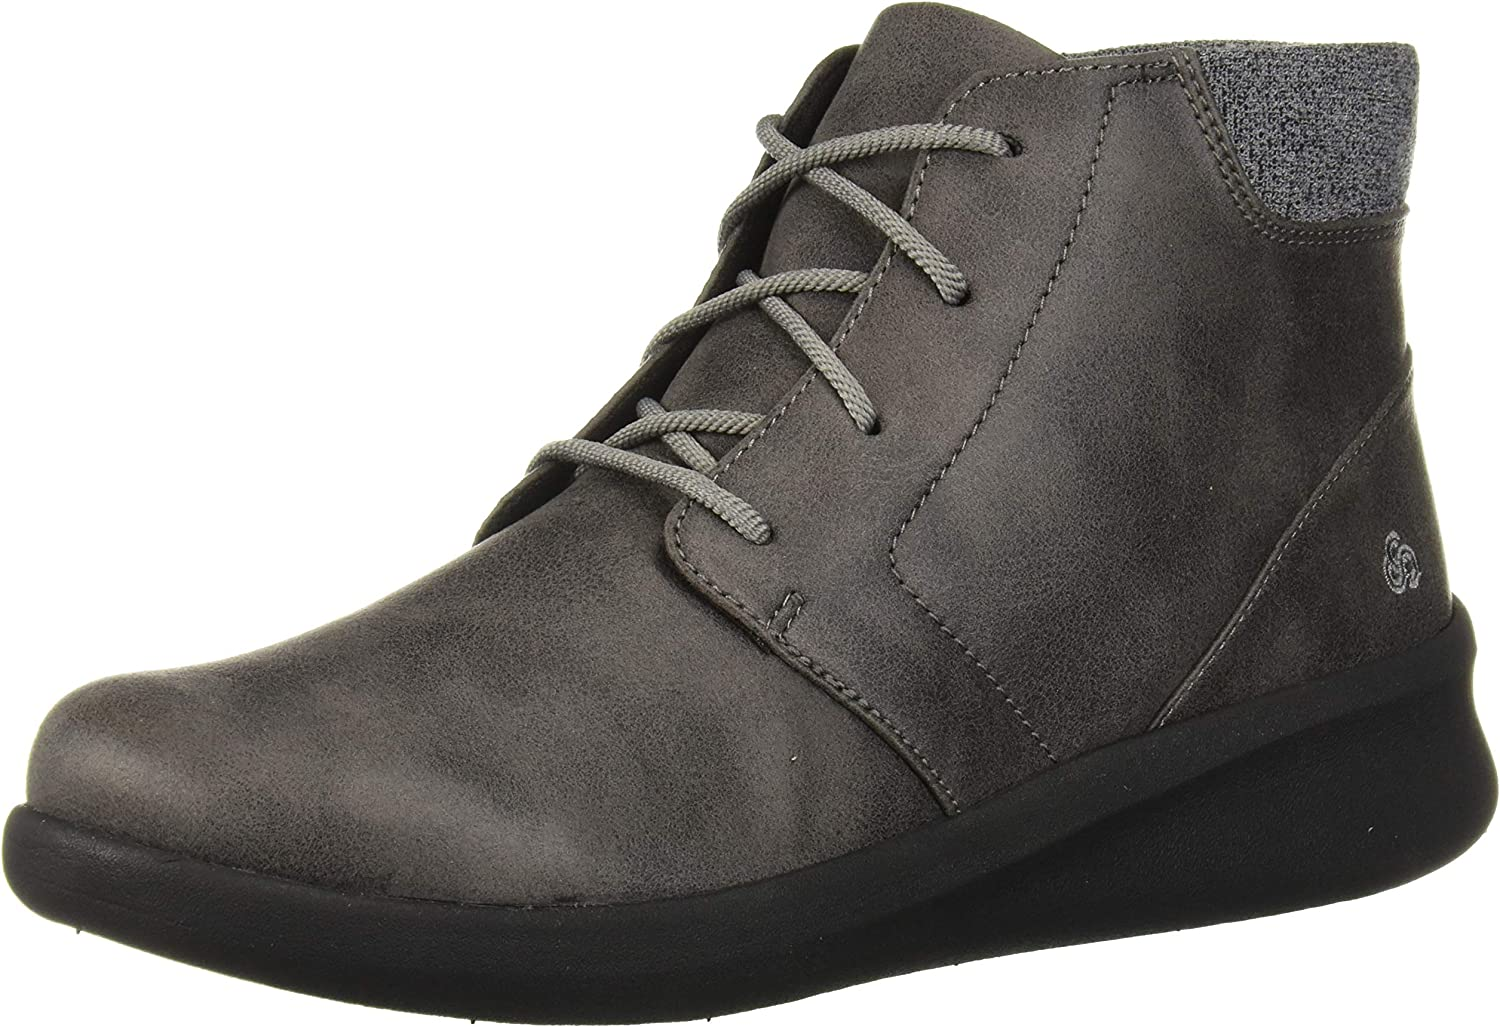 Clarks Rapid rise Women's Sillian 2.0 Ankle Boot New products, world's highest quality popular! Way